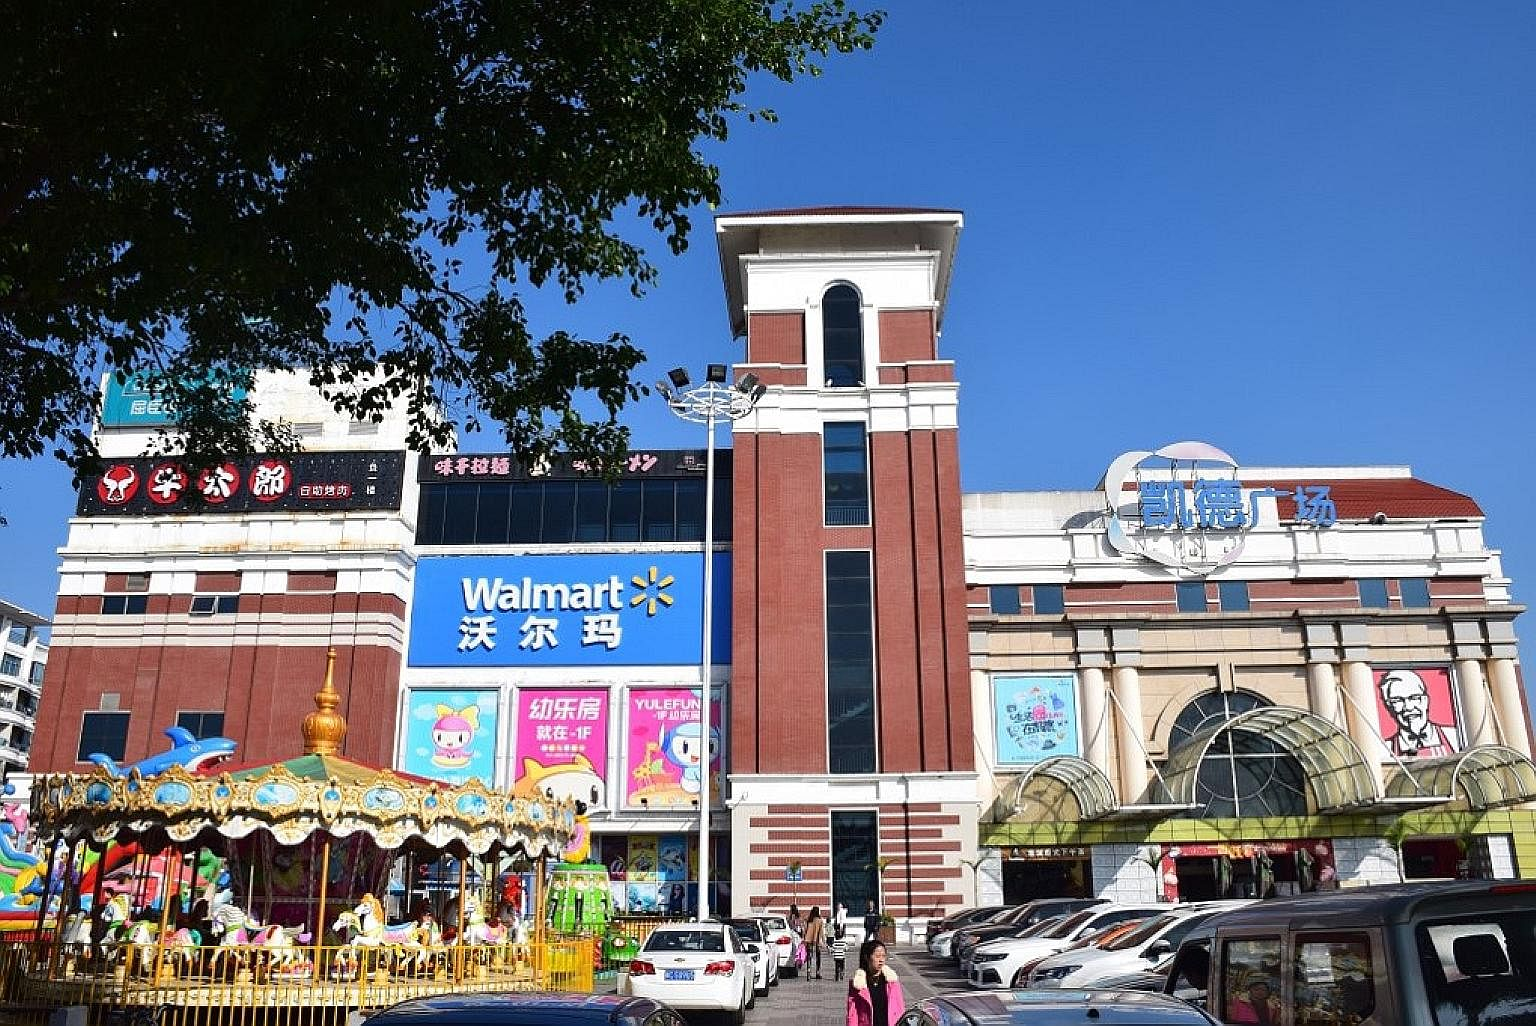 CapitaMall Quanzhou in Quanzhou, Fujian province, one of the 20 Chinese malls developer CapitaLand is offloading.